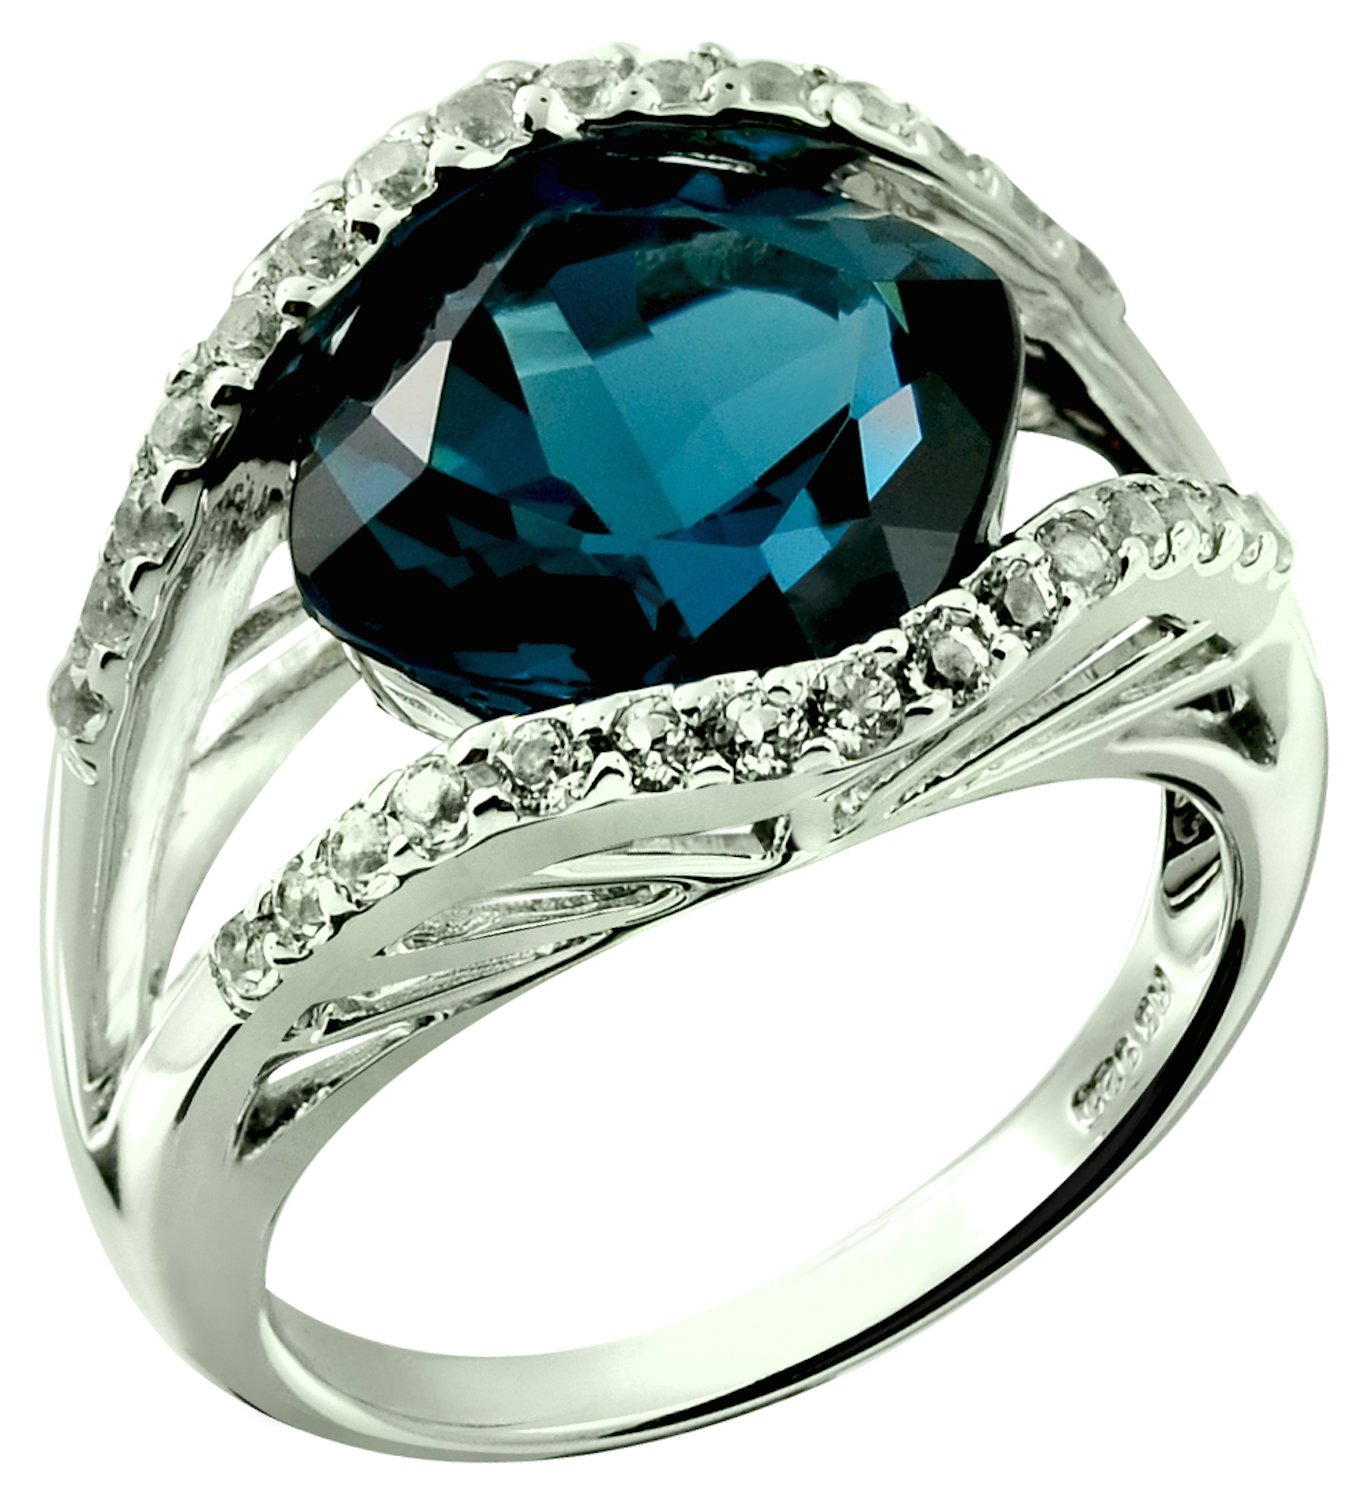 Sterling Silver 925 STATEMENT Ring GENUINE LONDON BLUE TOPAZ 7.62 Carats with RHODIUM-PLATED Finish (8)